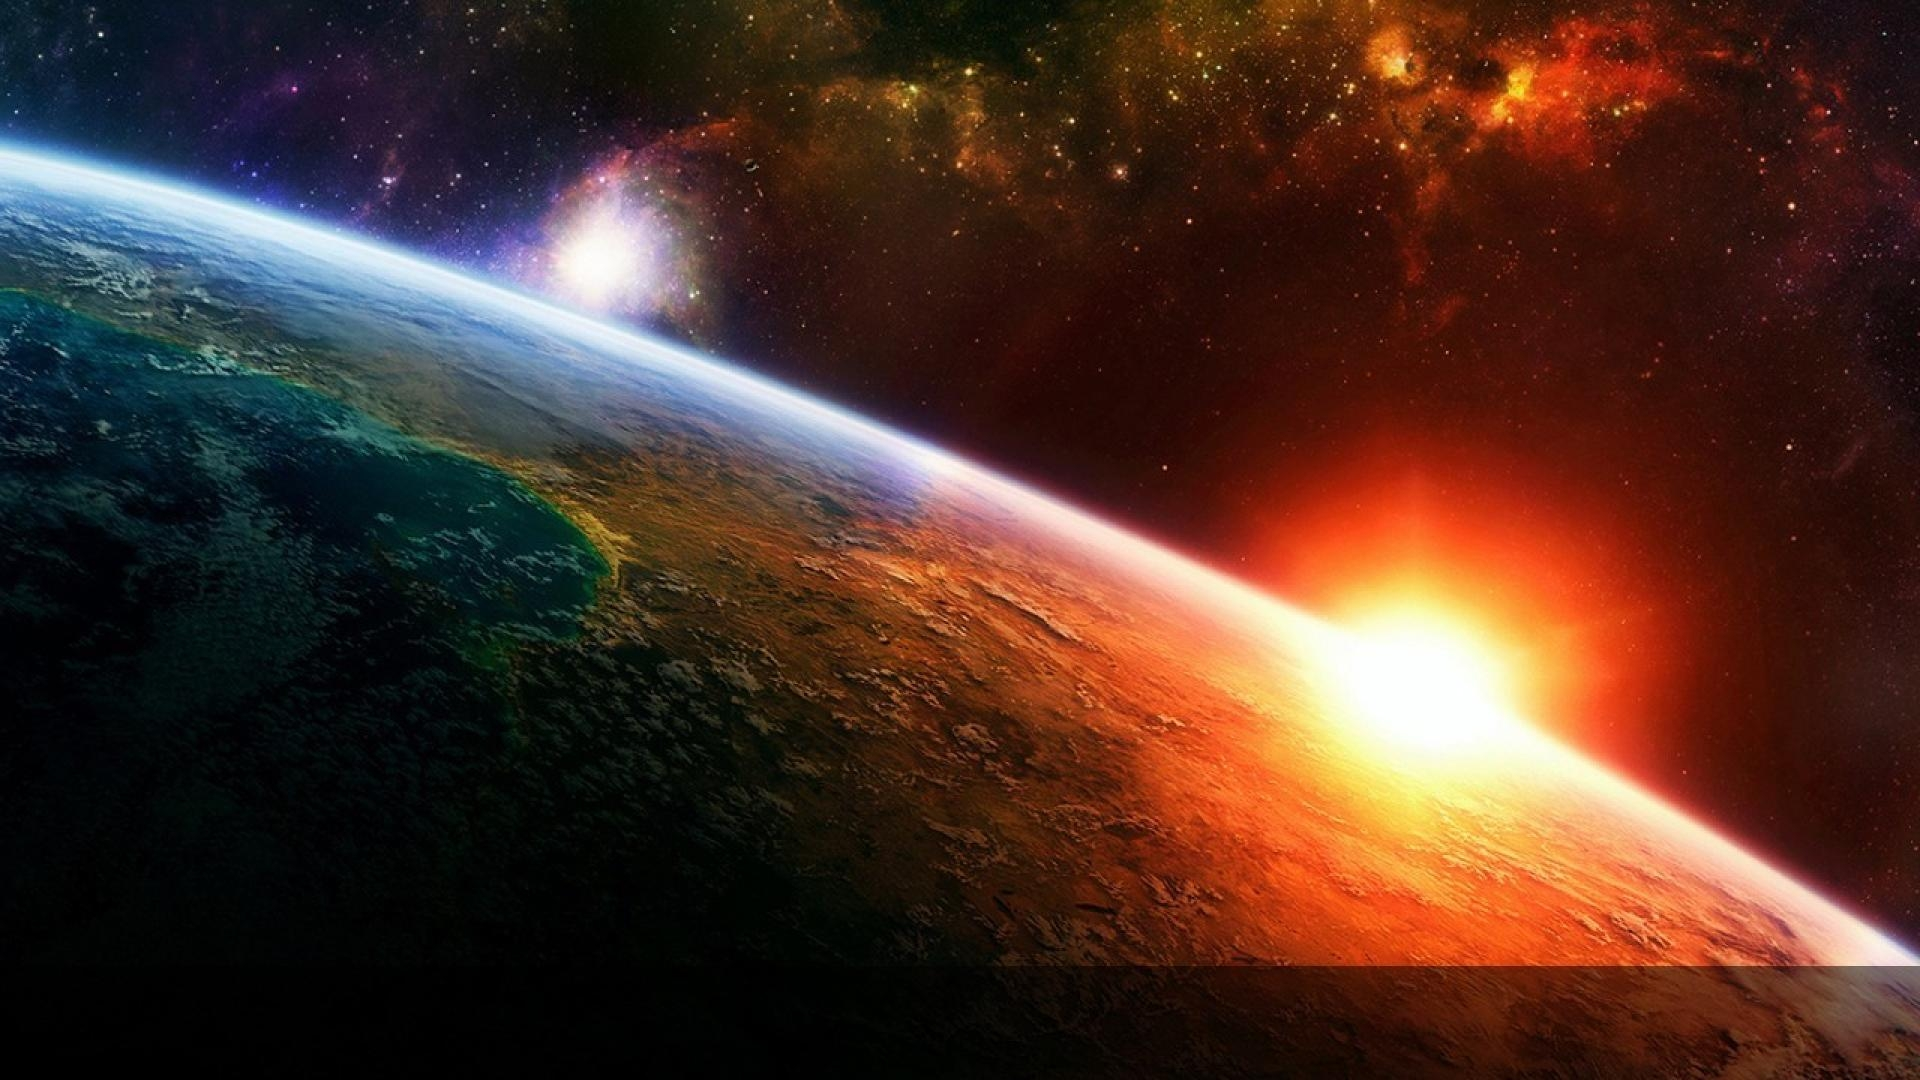 Cool Wallpapers 1920x1080 with Earth on Space HD Wallpapers for 1920x1080